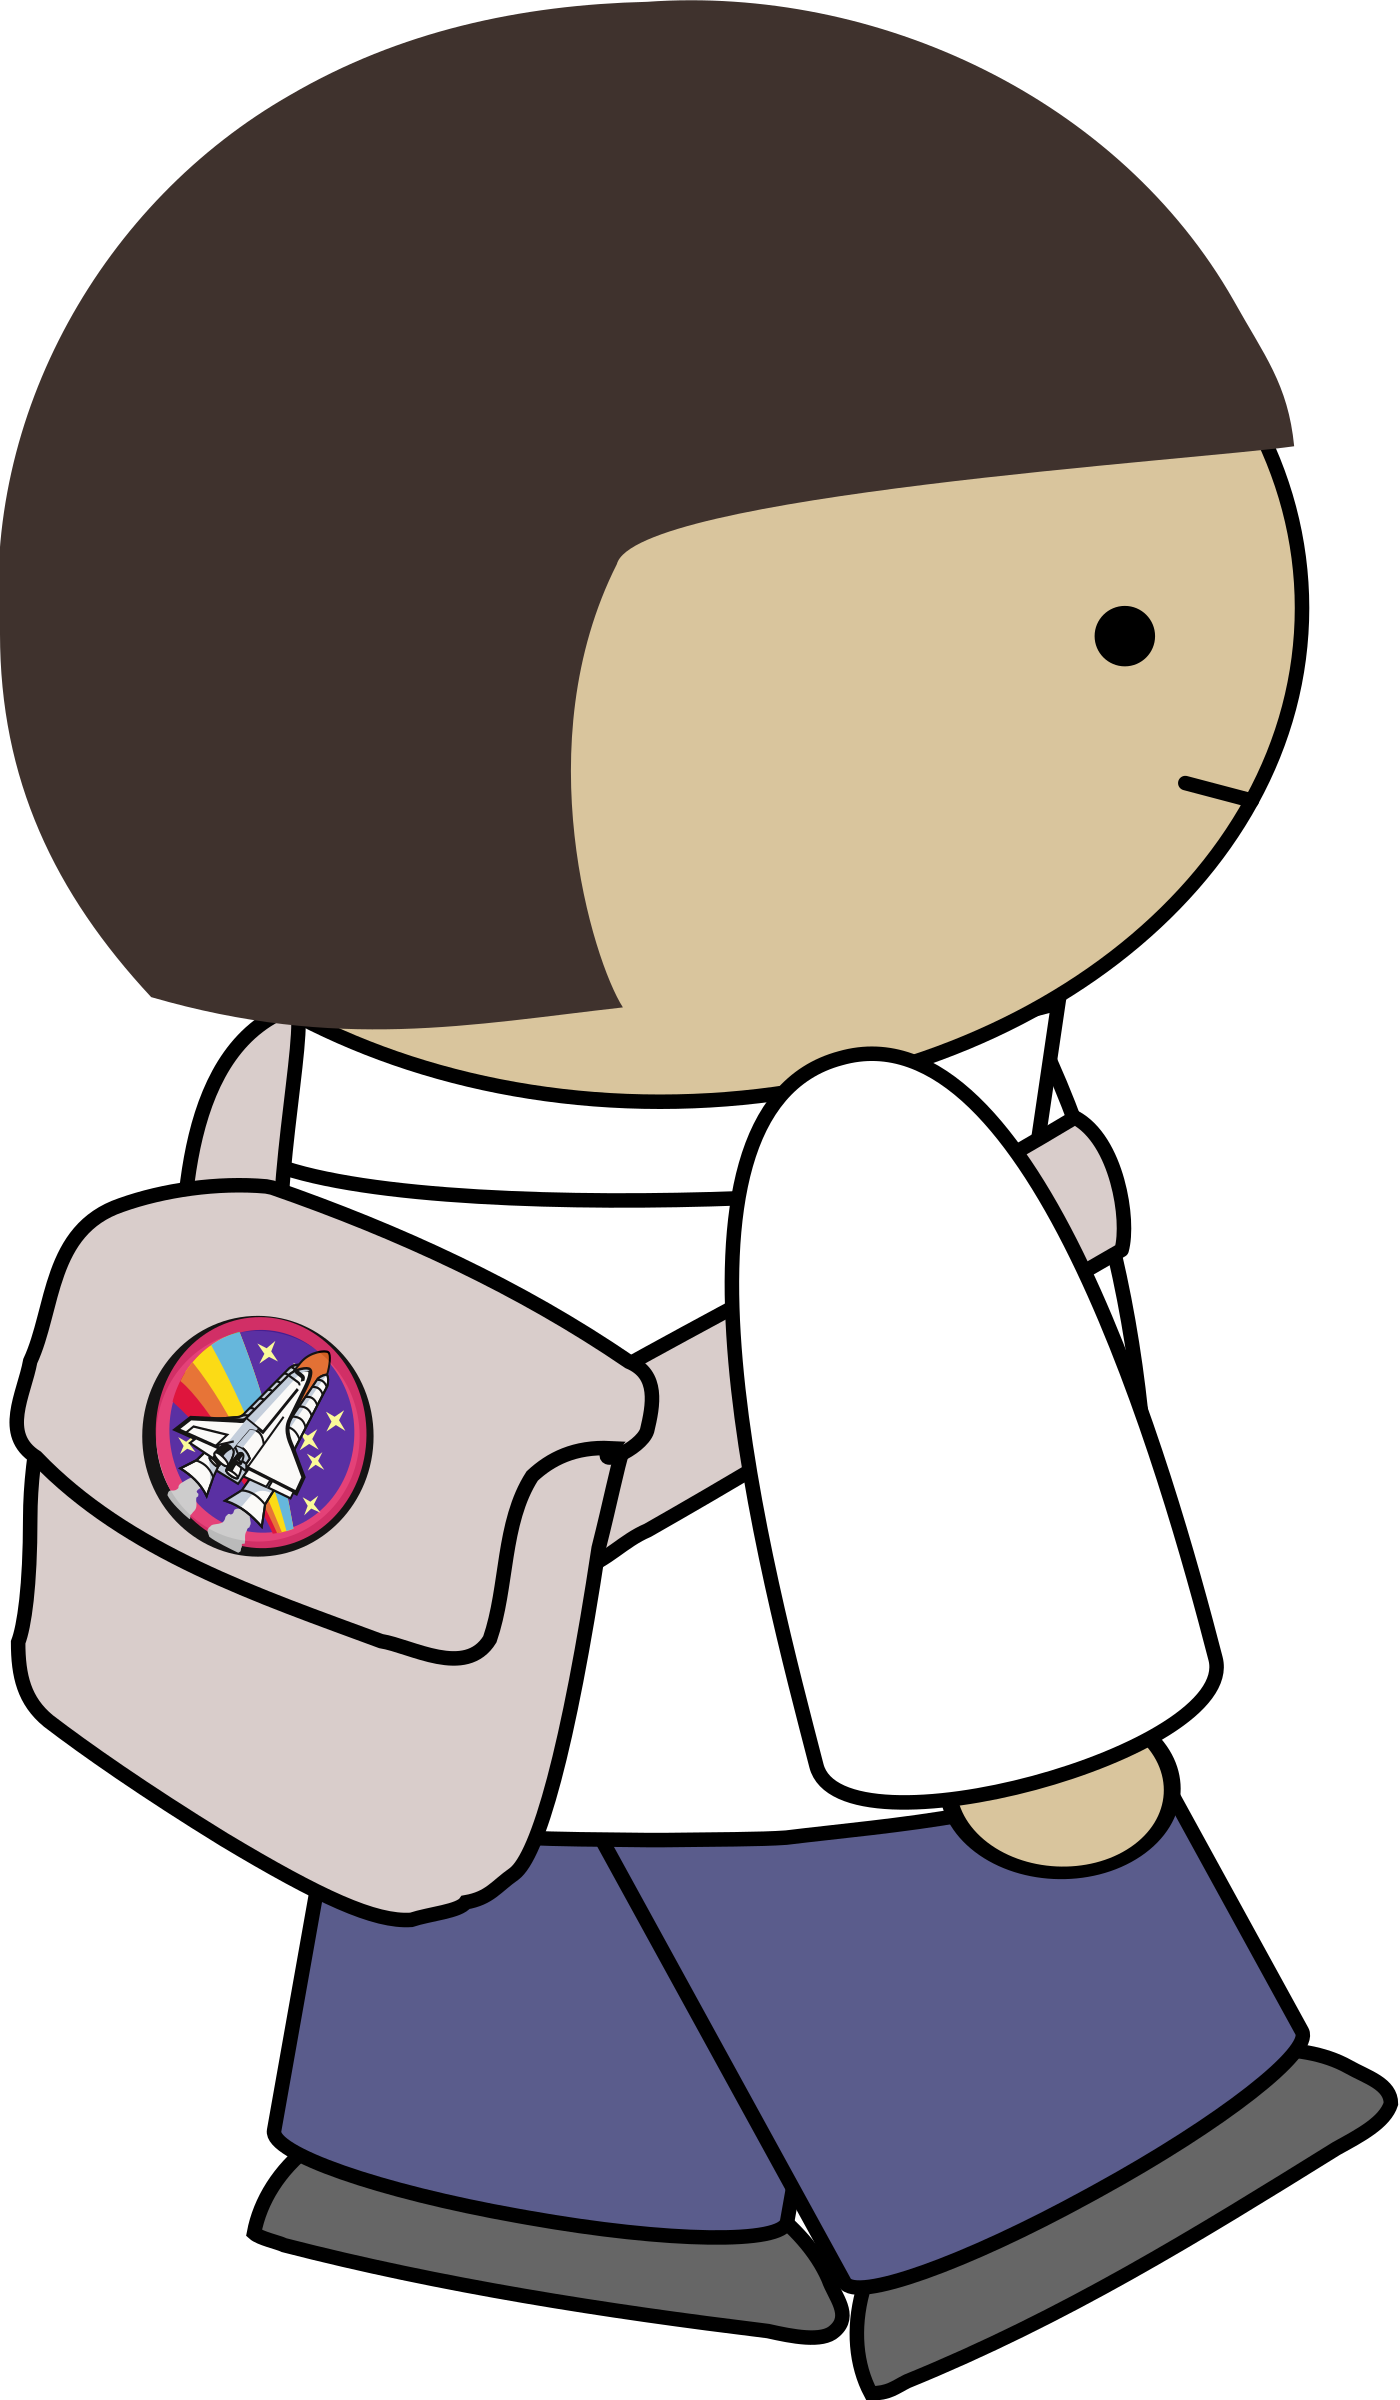 Clipart backpack small backpack. Walking character with big